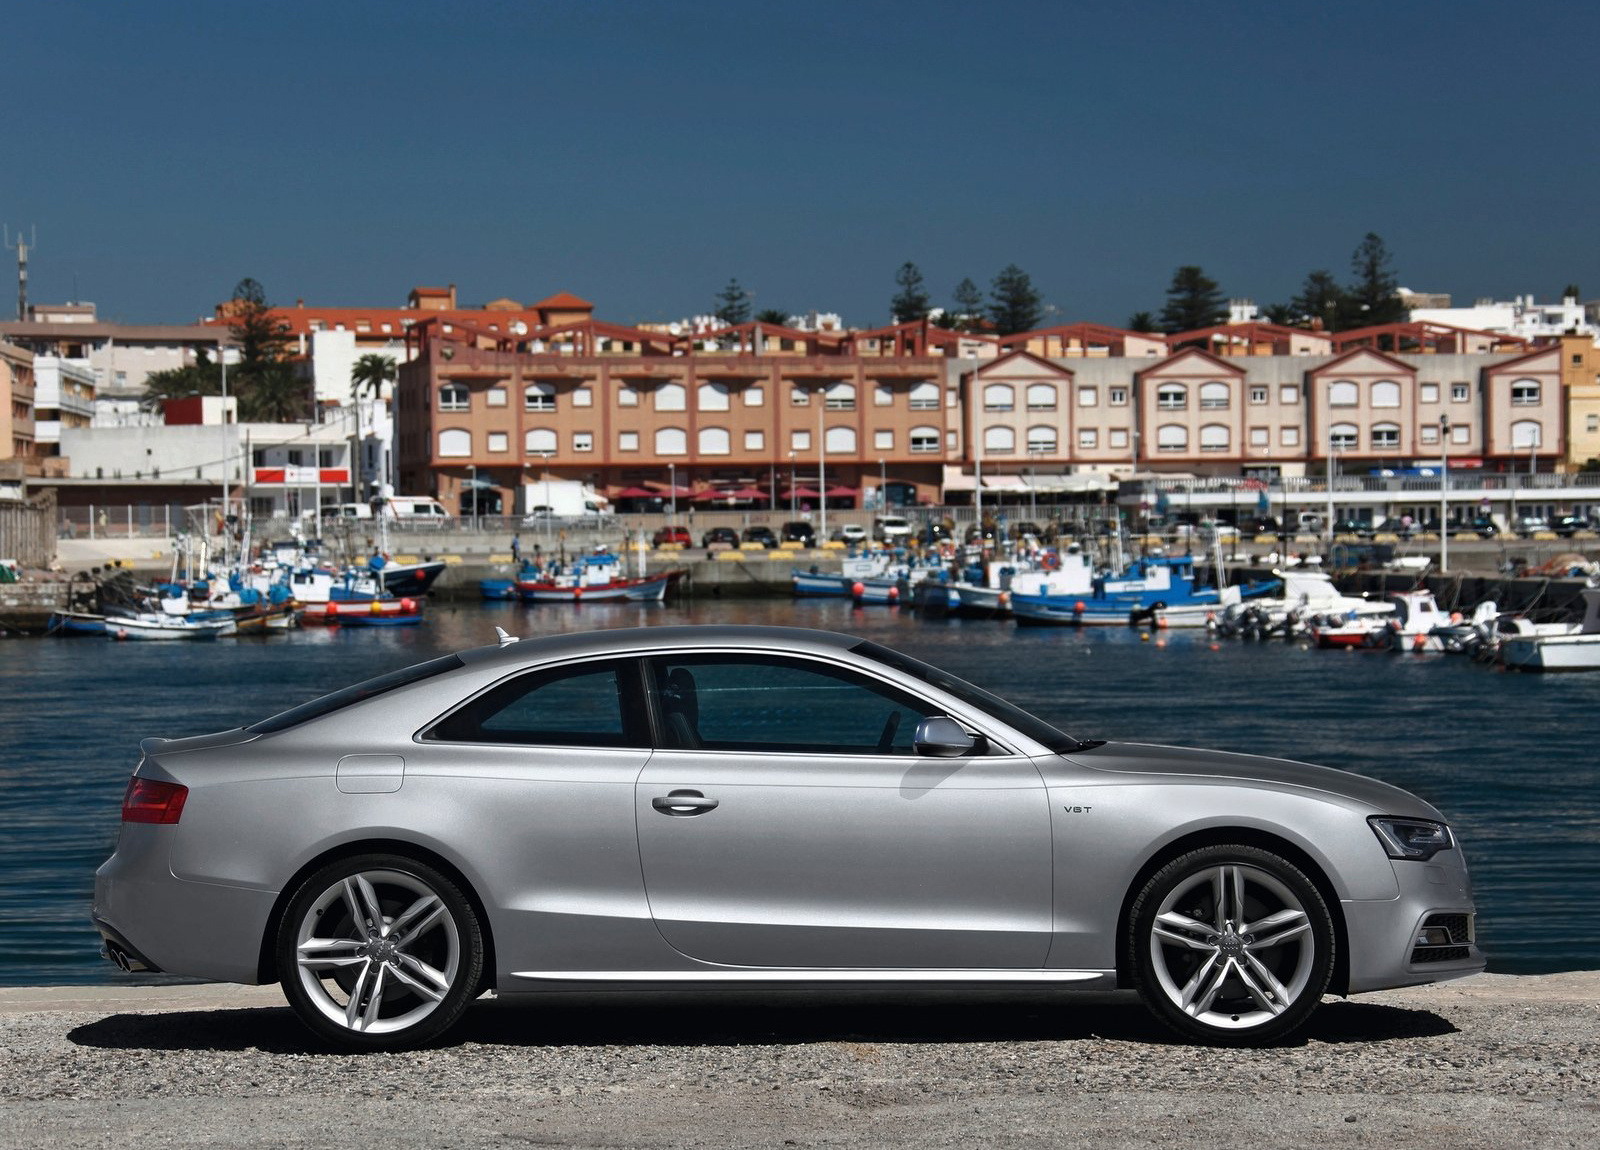 2012 audi s5 engine diagram search for wiring diagrams 2012 audi s5 wallpapers the world of audi rh audiindia blogspot com 2012 audi s5 exhaust freerunsca Choice Image